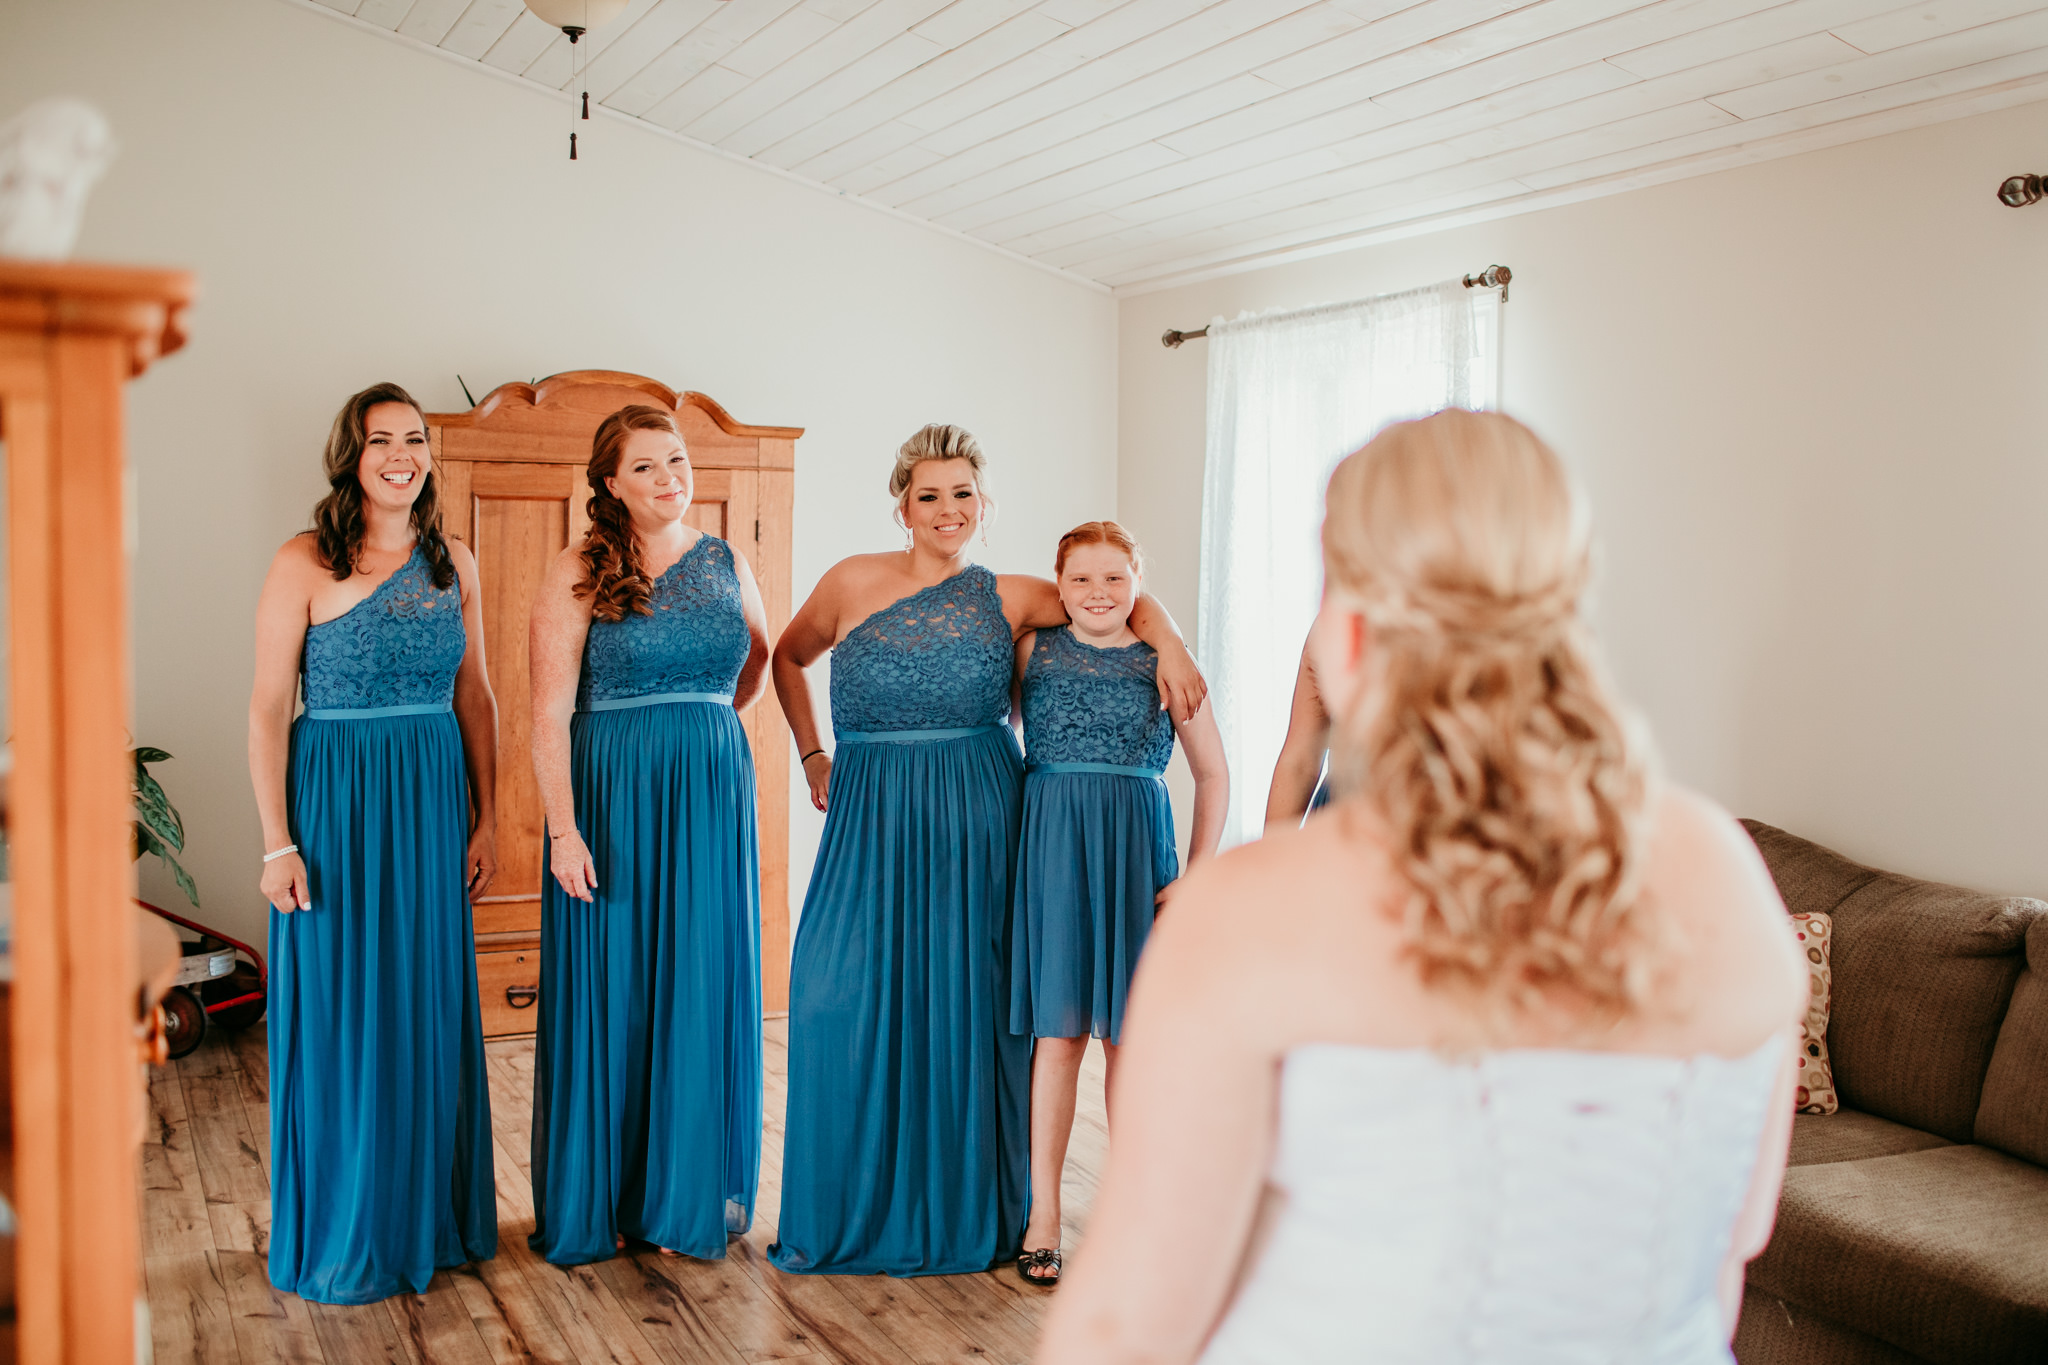 bridesmaid reaction to bride coming out with her wedding dress on for the first time